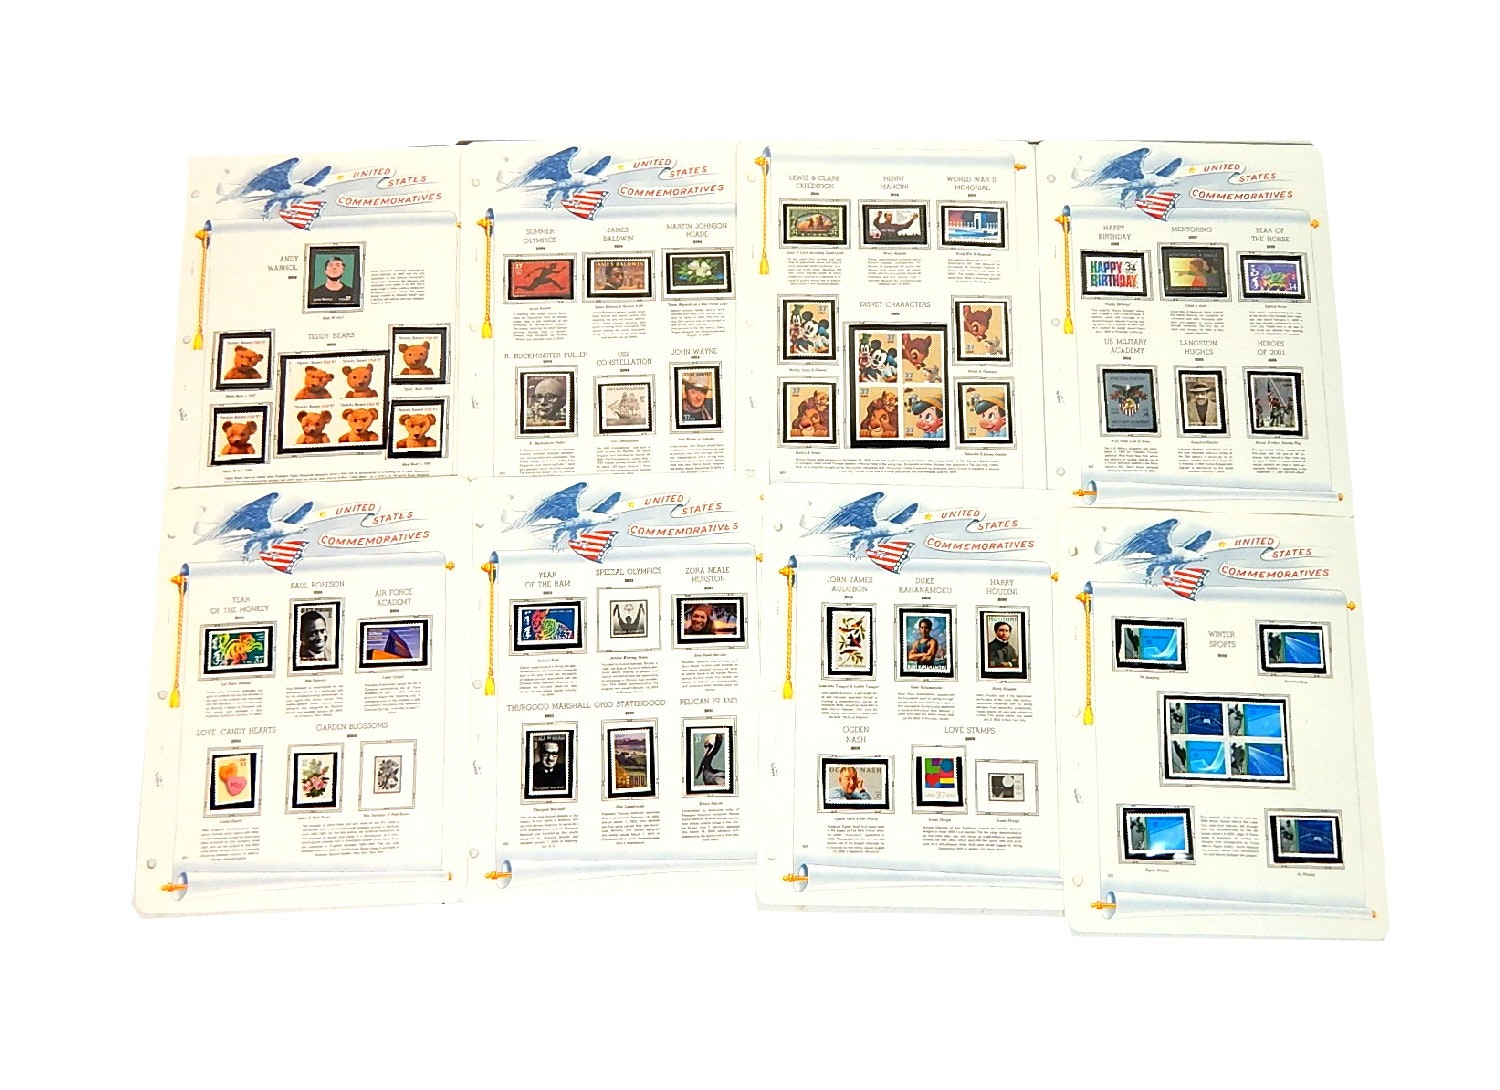 U.S. Commemorative Stamps with Disney Characters, Winter Sports, Audubon